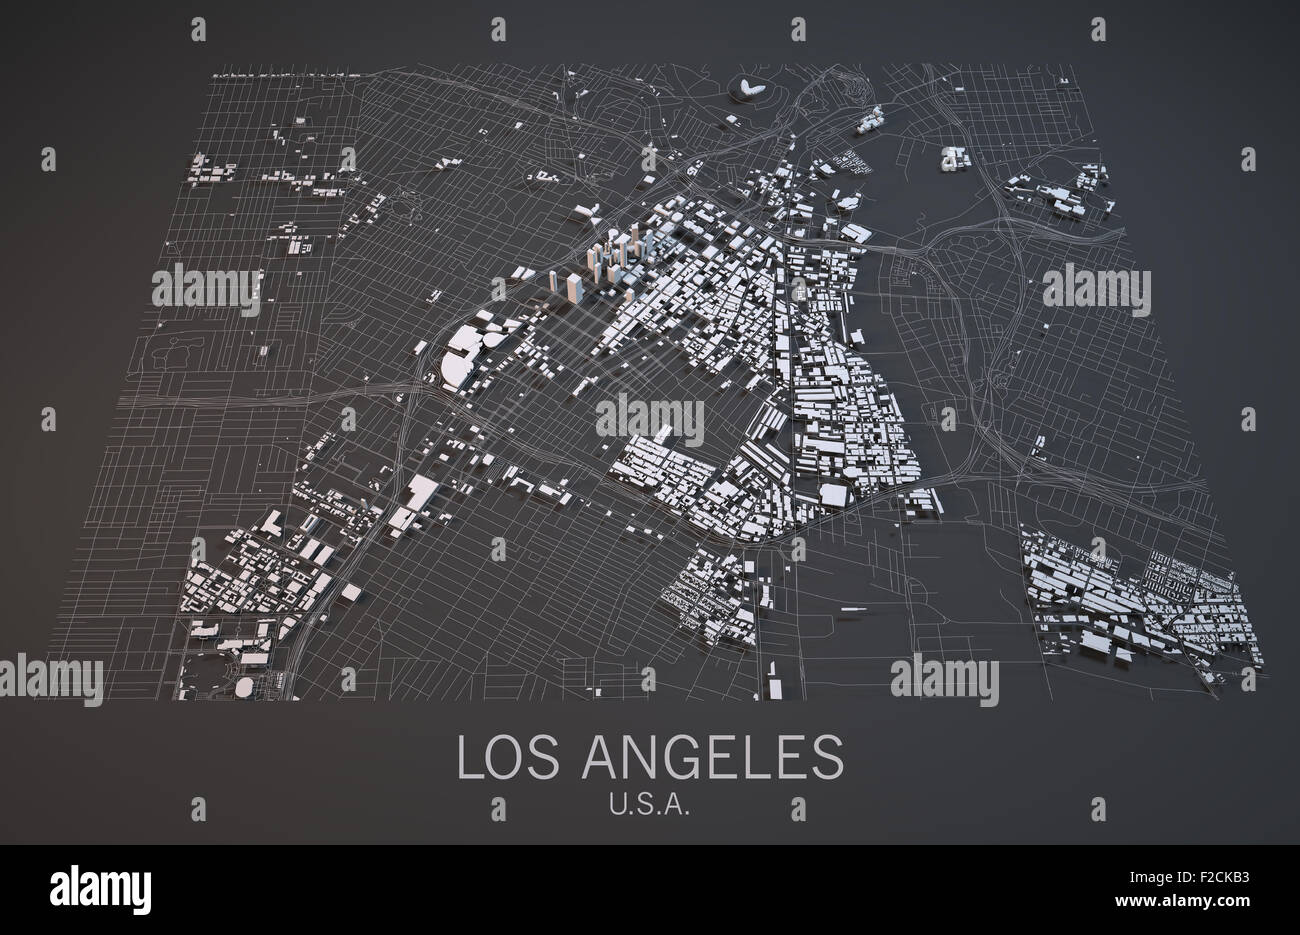 Satellite View Of Los Angeles Map United States Of America Usa 3d